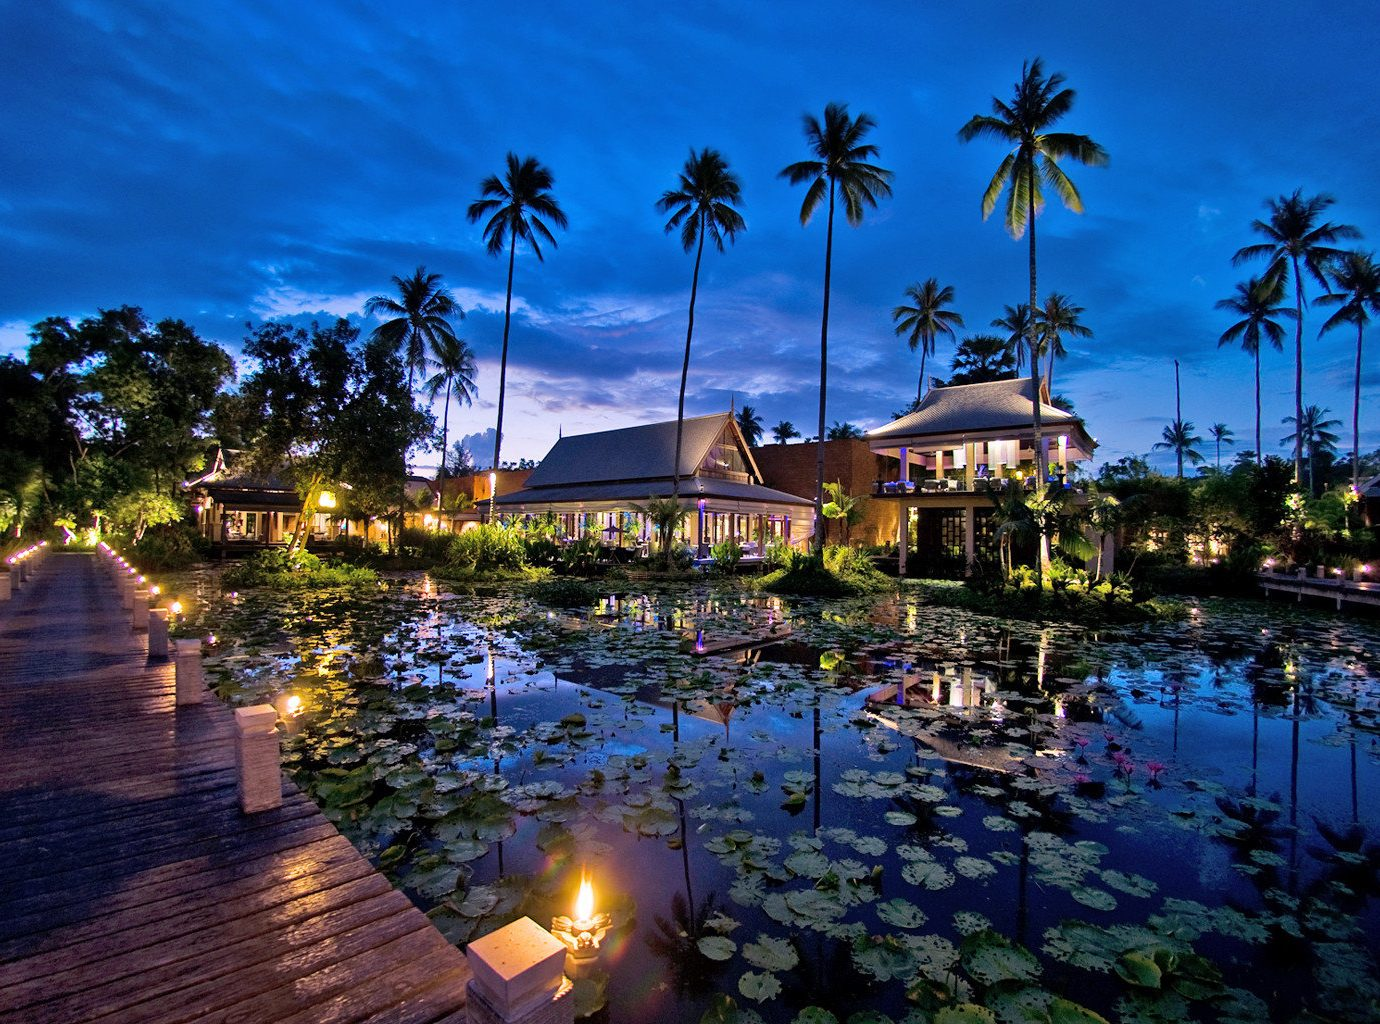 Hotels outdoor tree sky Resort estate swimming pool evening reflection dusk arecales light night several